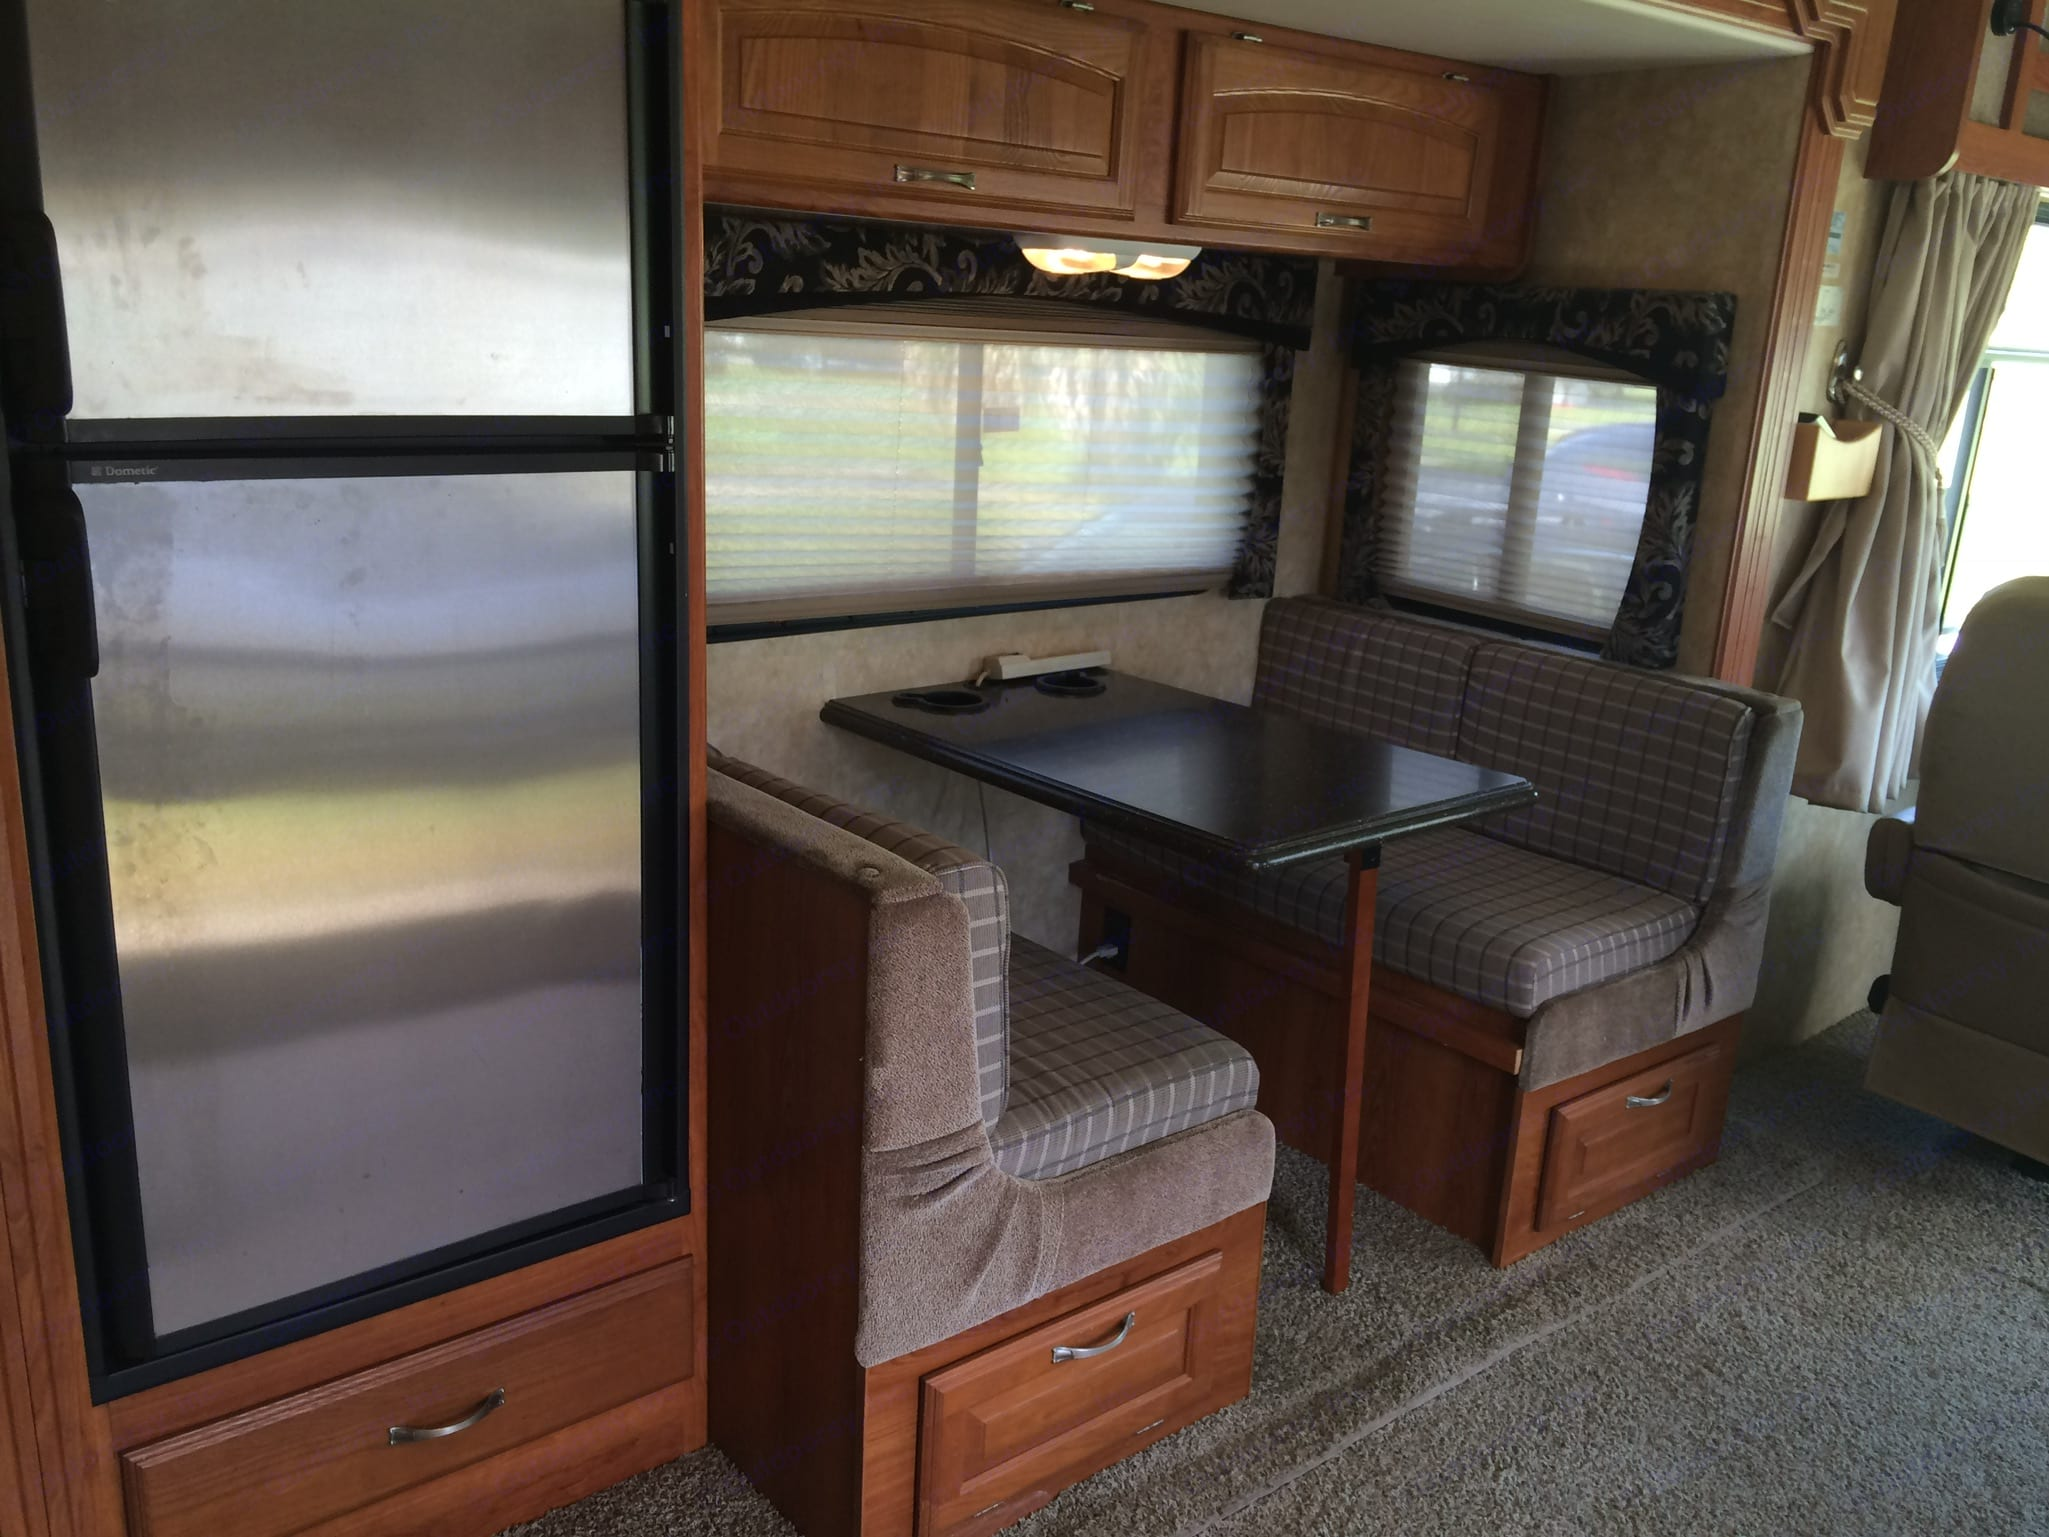 3-way refrigerator/freezer; dinette with Corian tabletop folds down to bed.. Coachmen Mirada 2009